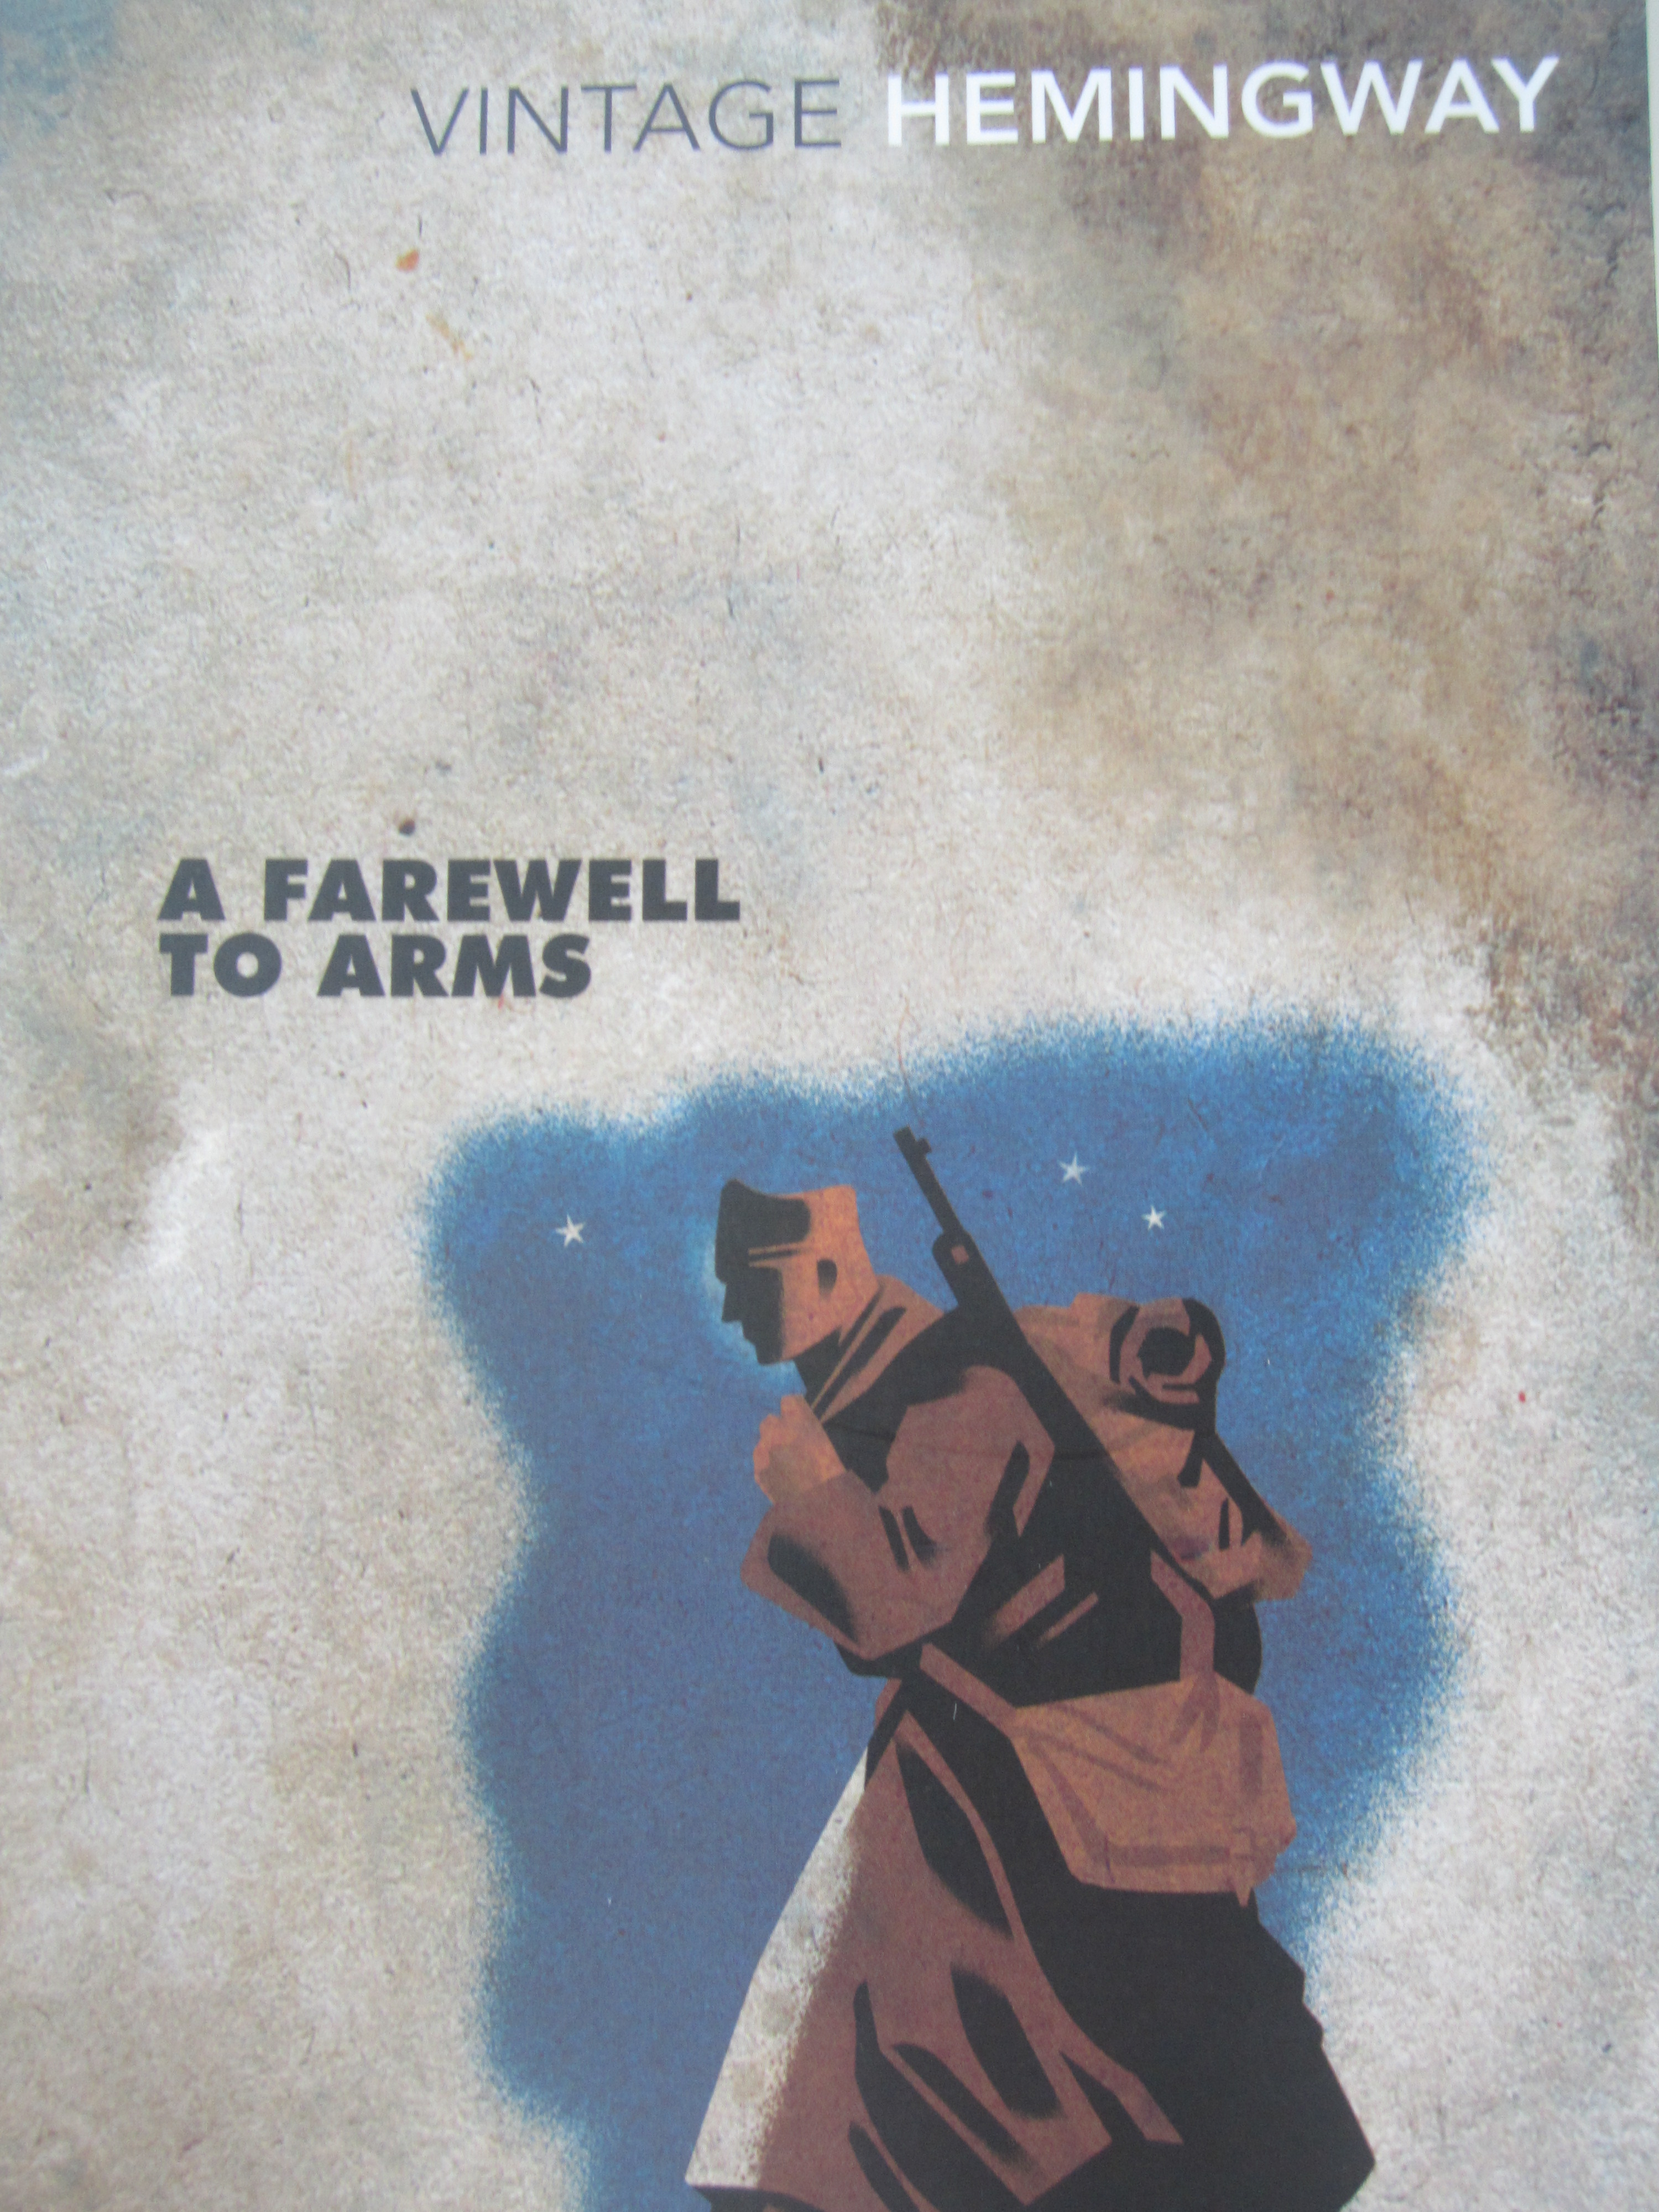 a farewell to arms ernest hemingways A farewell to arms delivered on the promise of ernest hemingway's early work and secured his place as a great american writer pulling from biographical context (hemingway's experience in.